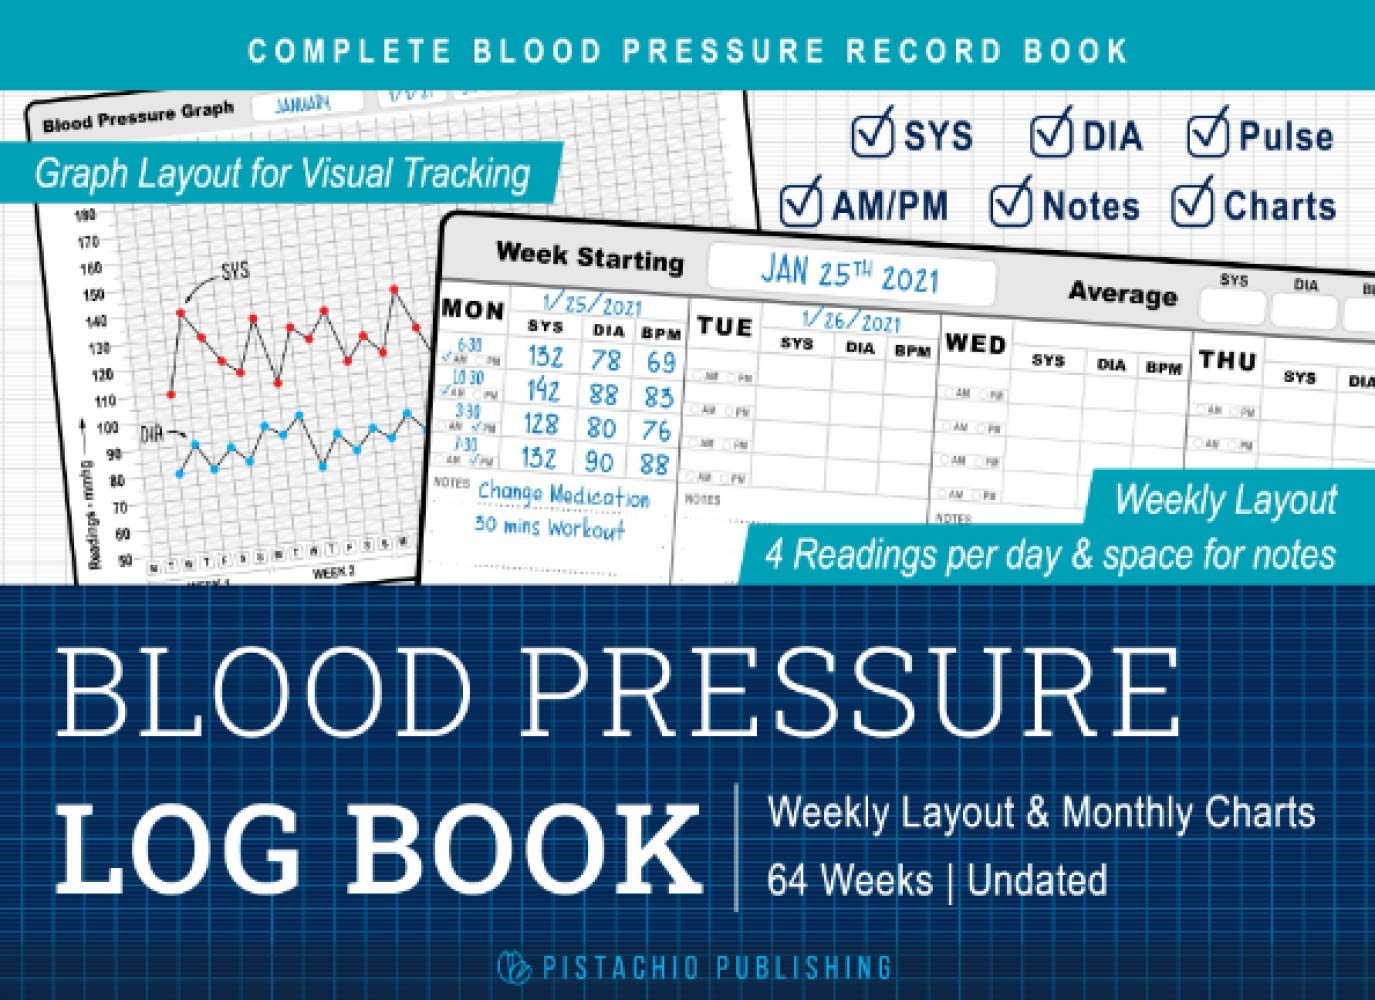 Blood Pressure Log Book Complete Blood Pressure Record Book with ...